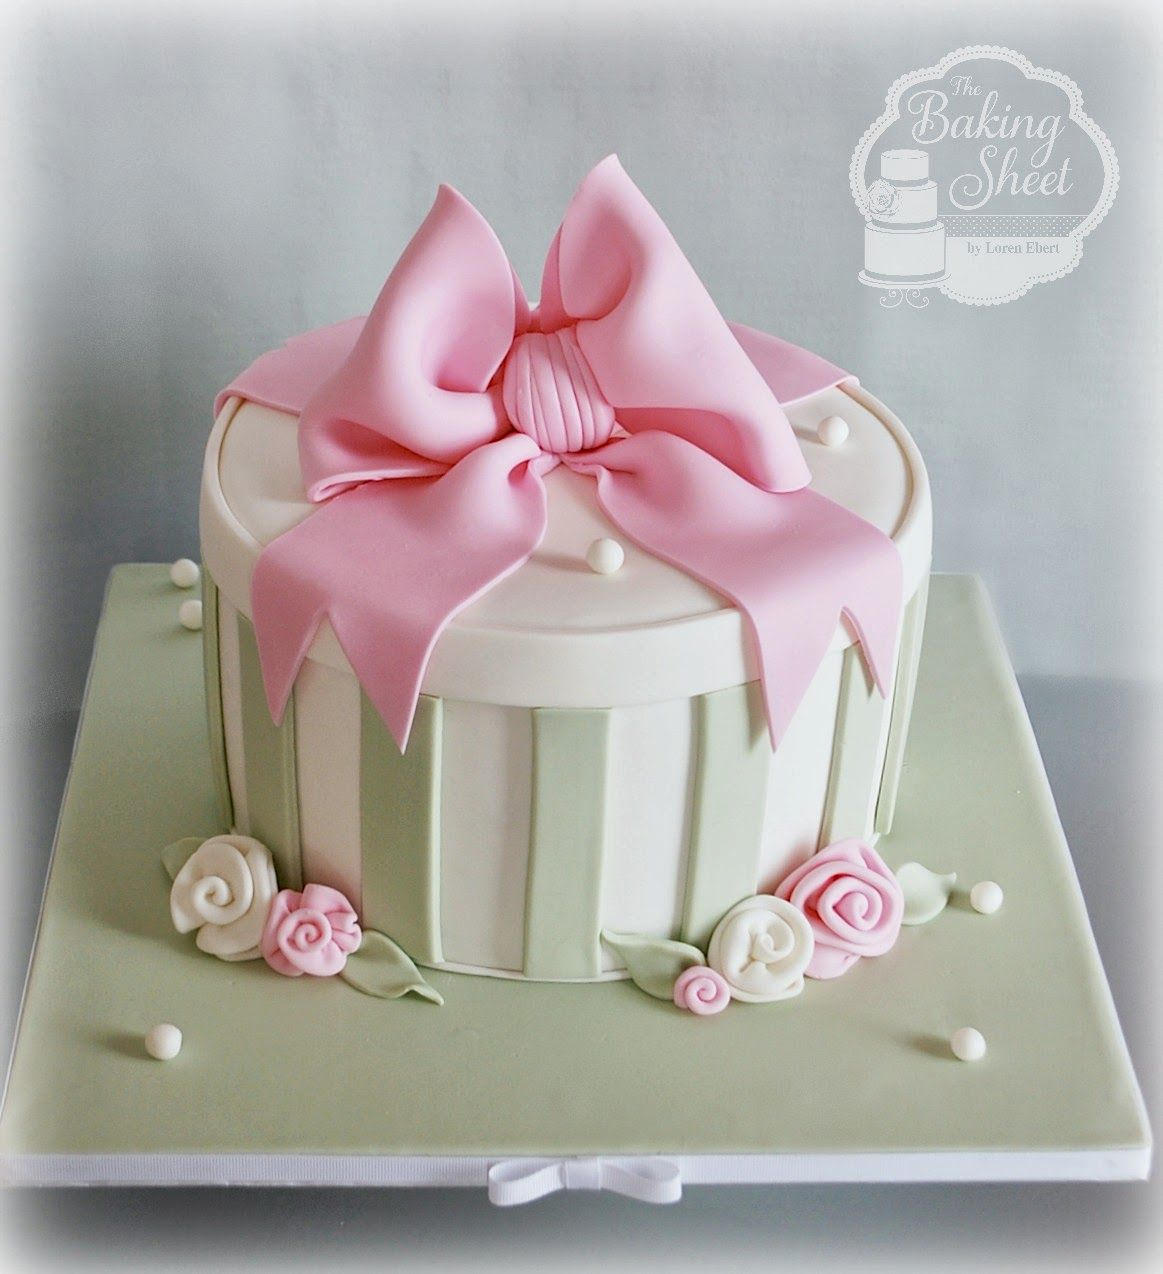 Kuchen Deko Geburtstag Hat Box Cakes Fondant Finish And Gumpaste Decoration